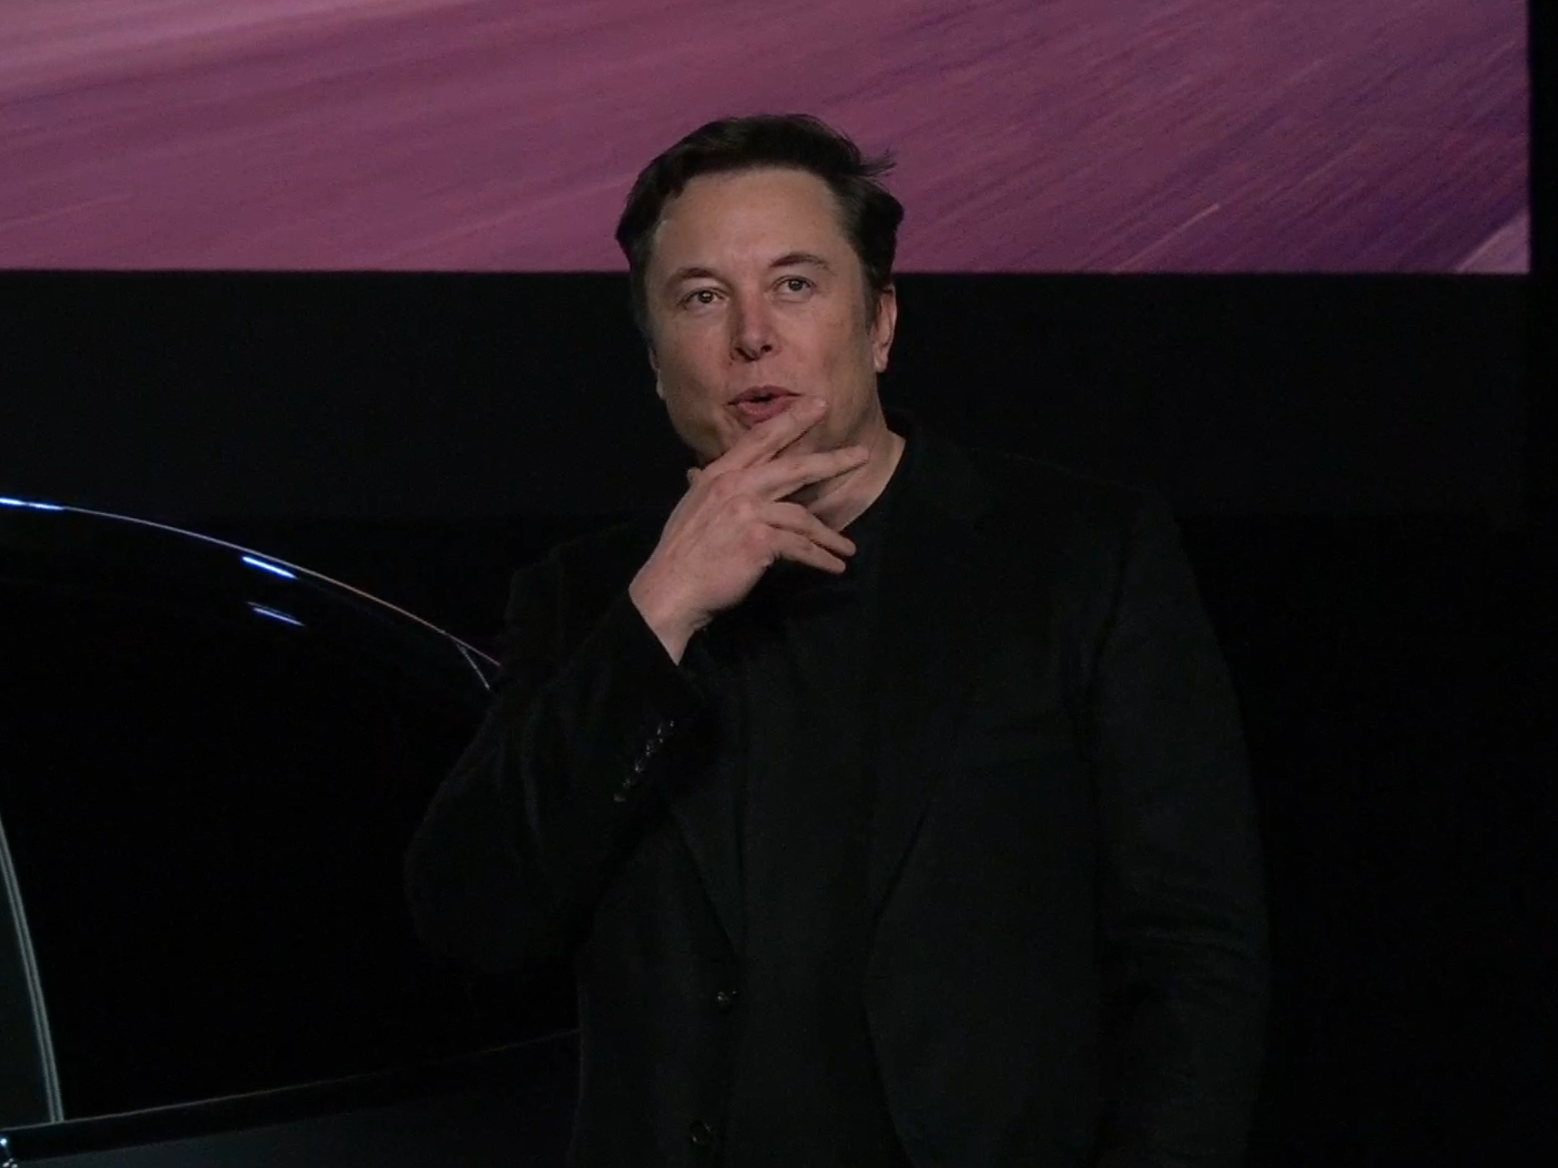 Elon Musk S Long Standing Support Of Basic Income Thus Support Of Andrew Yang